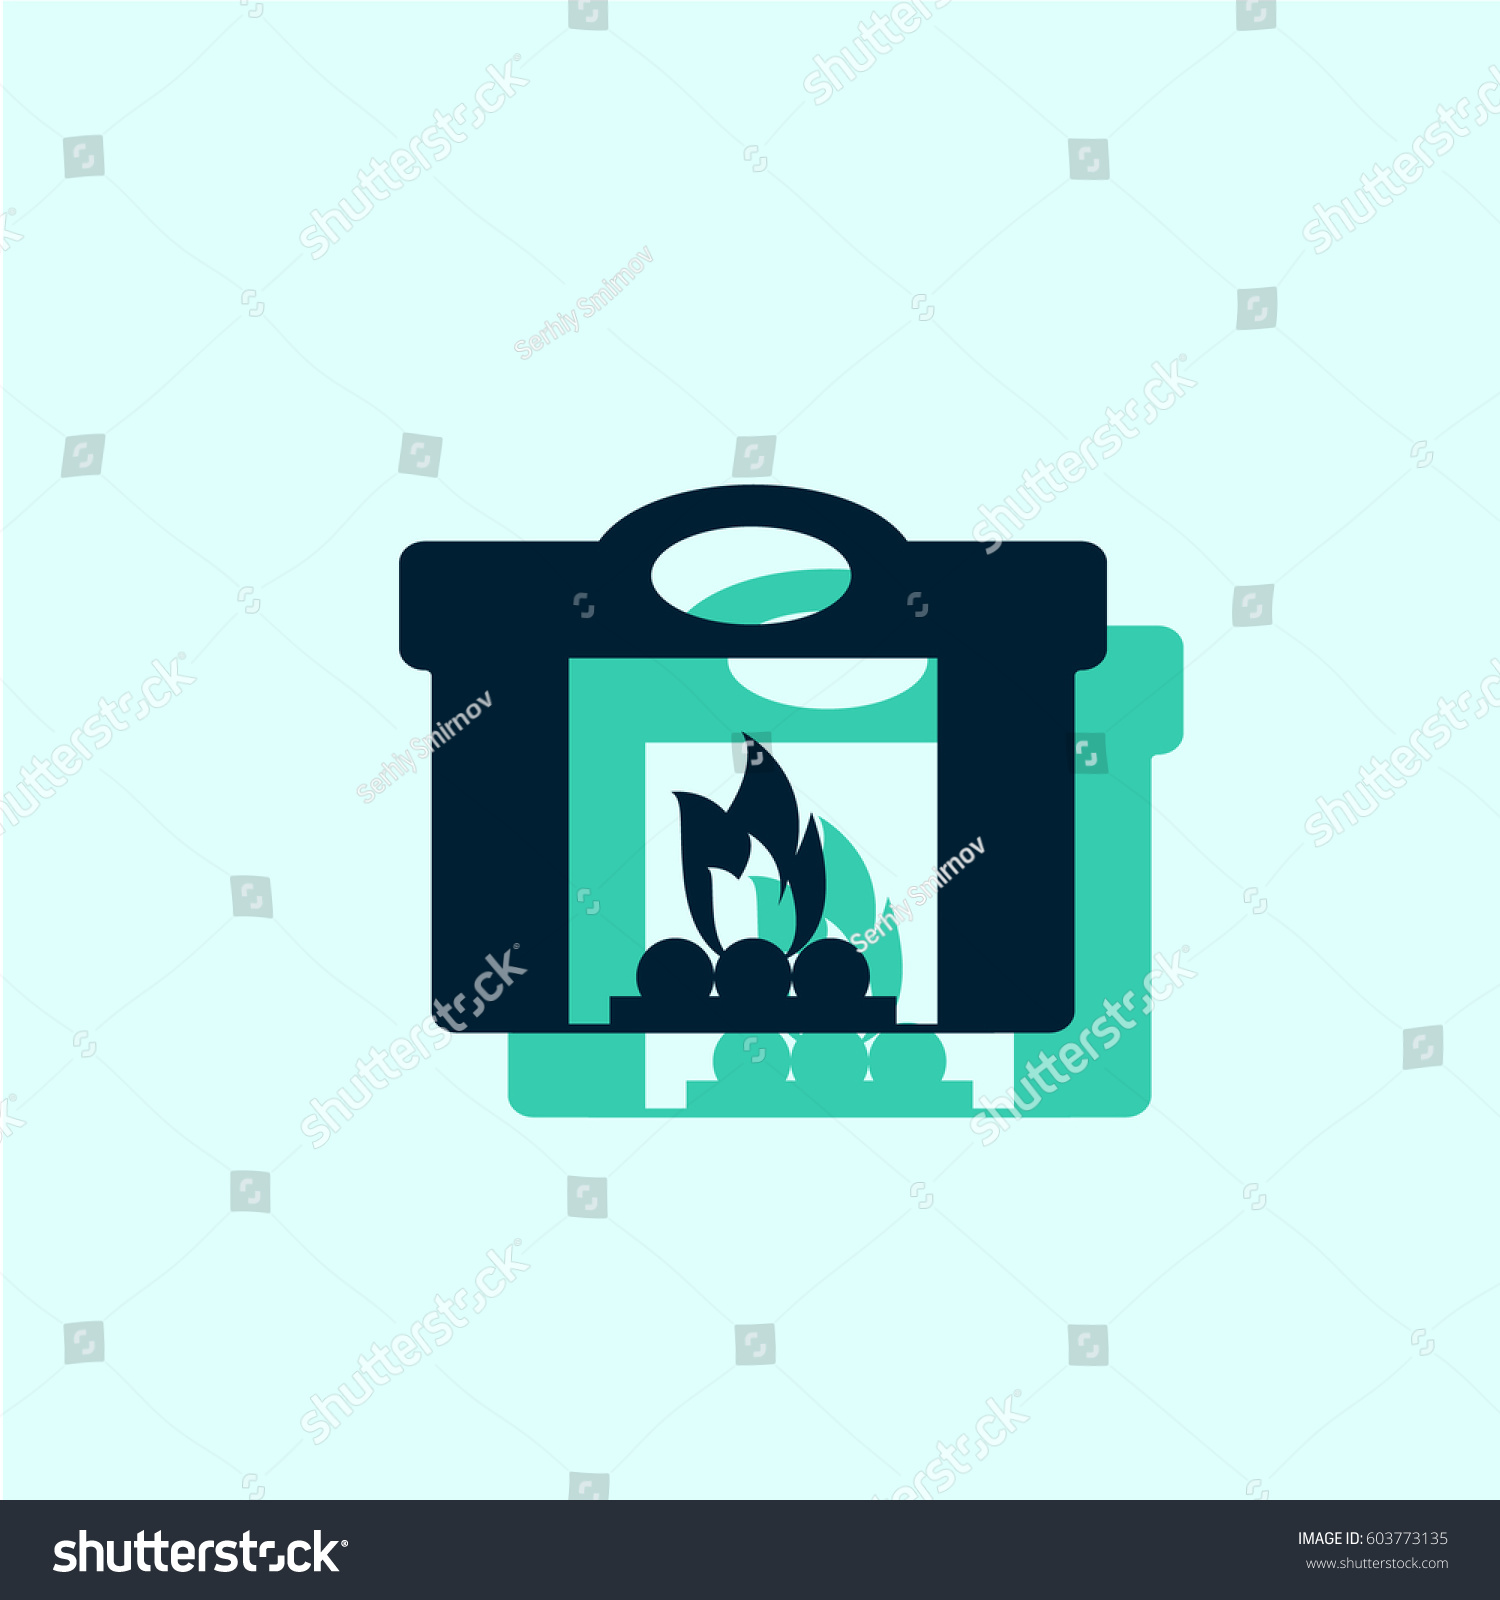 fireplace icon stock vector 603773135 shutterstock